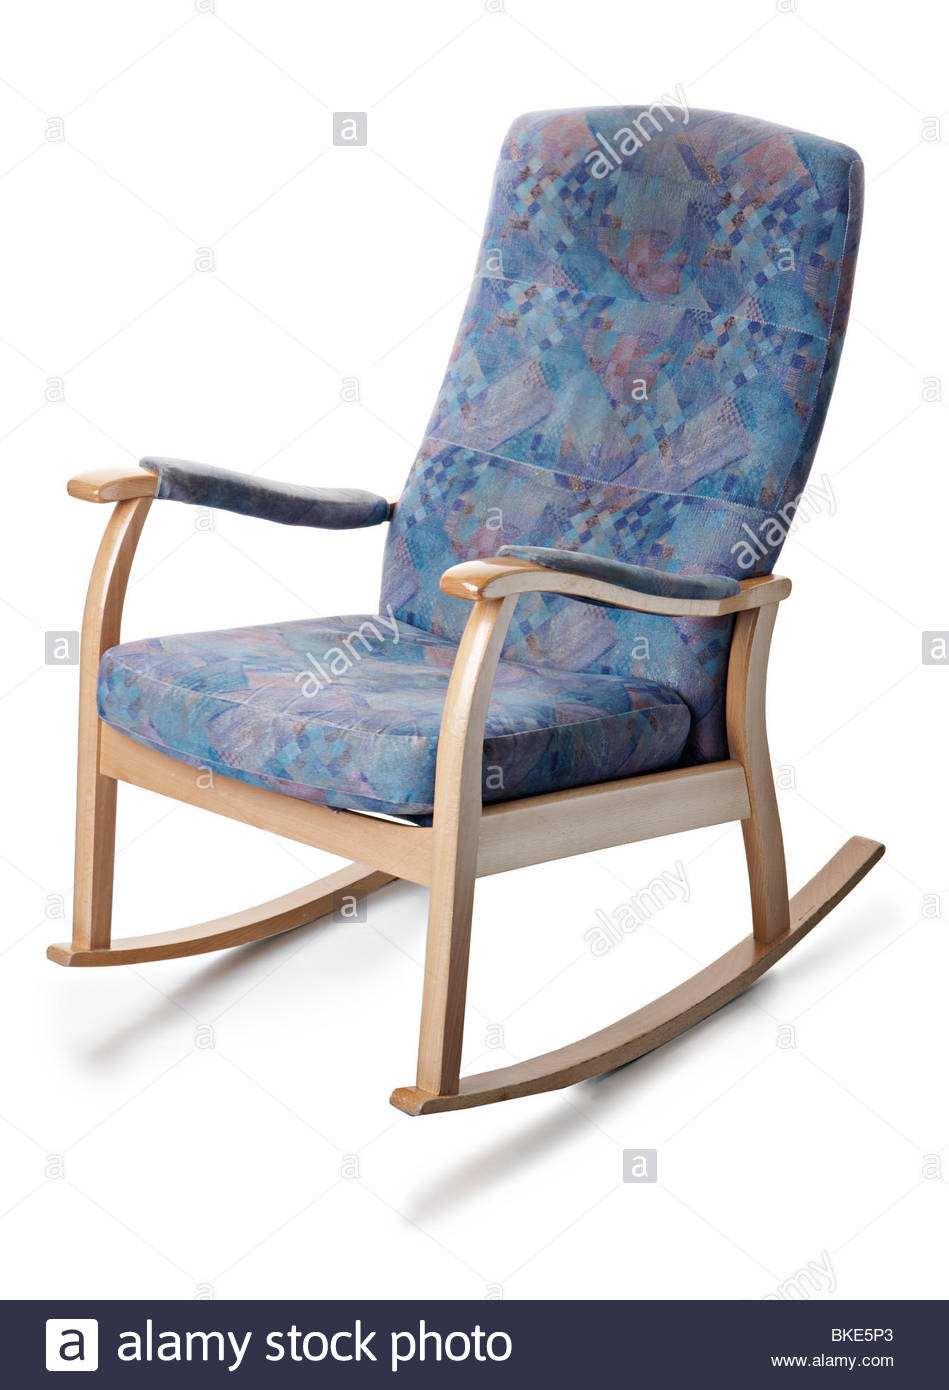 Rocking Old Chair Stock Photos & Rocking Old Chair Stock Images - Alamy